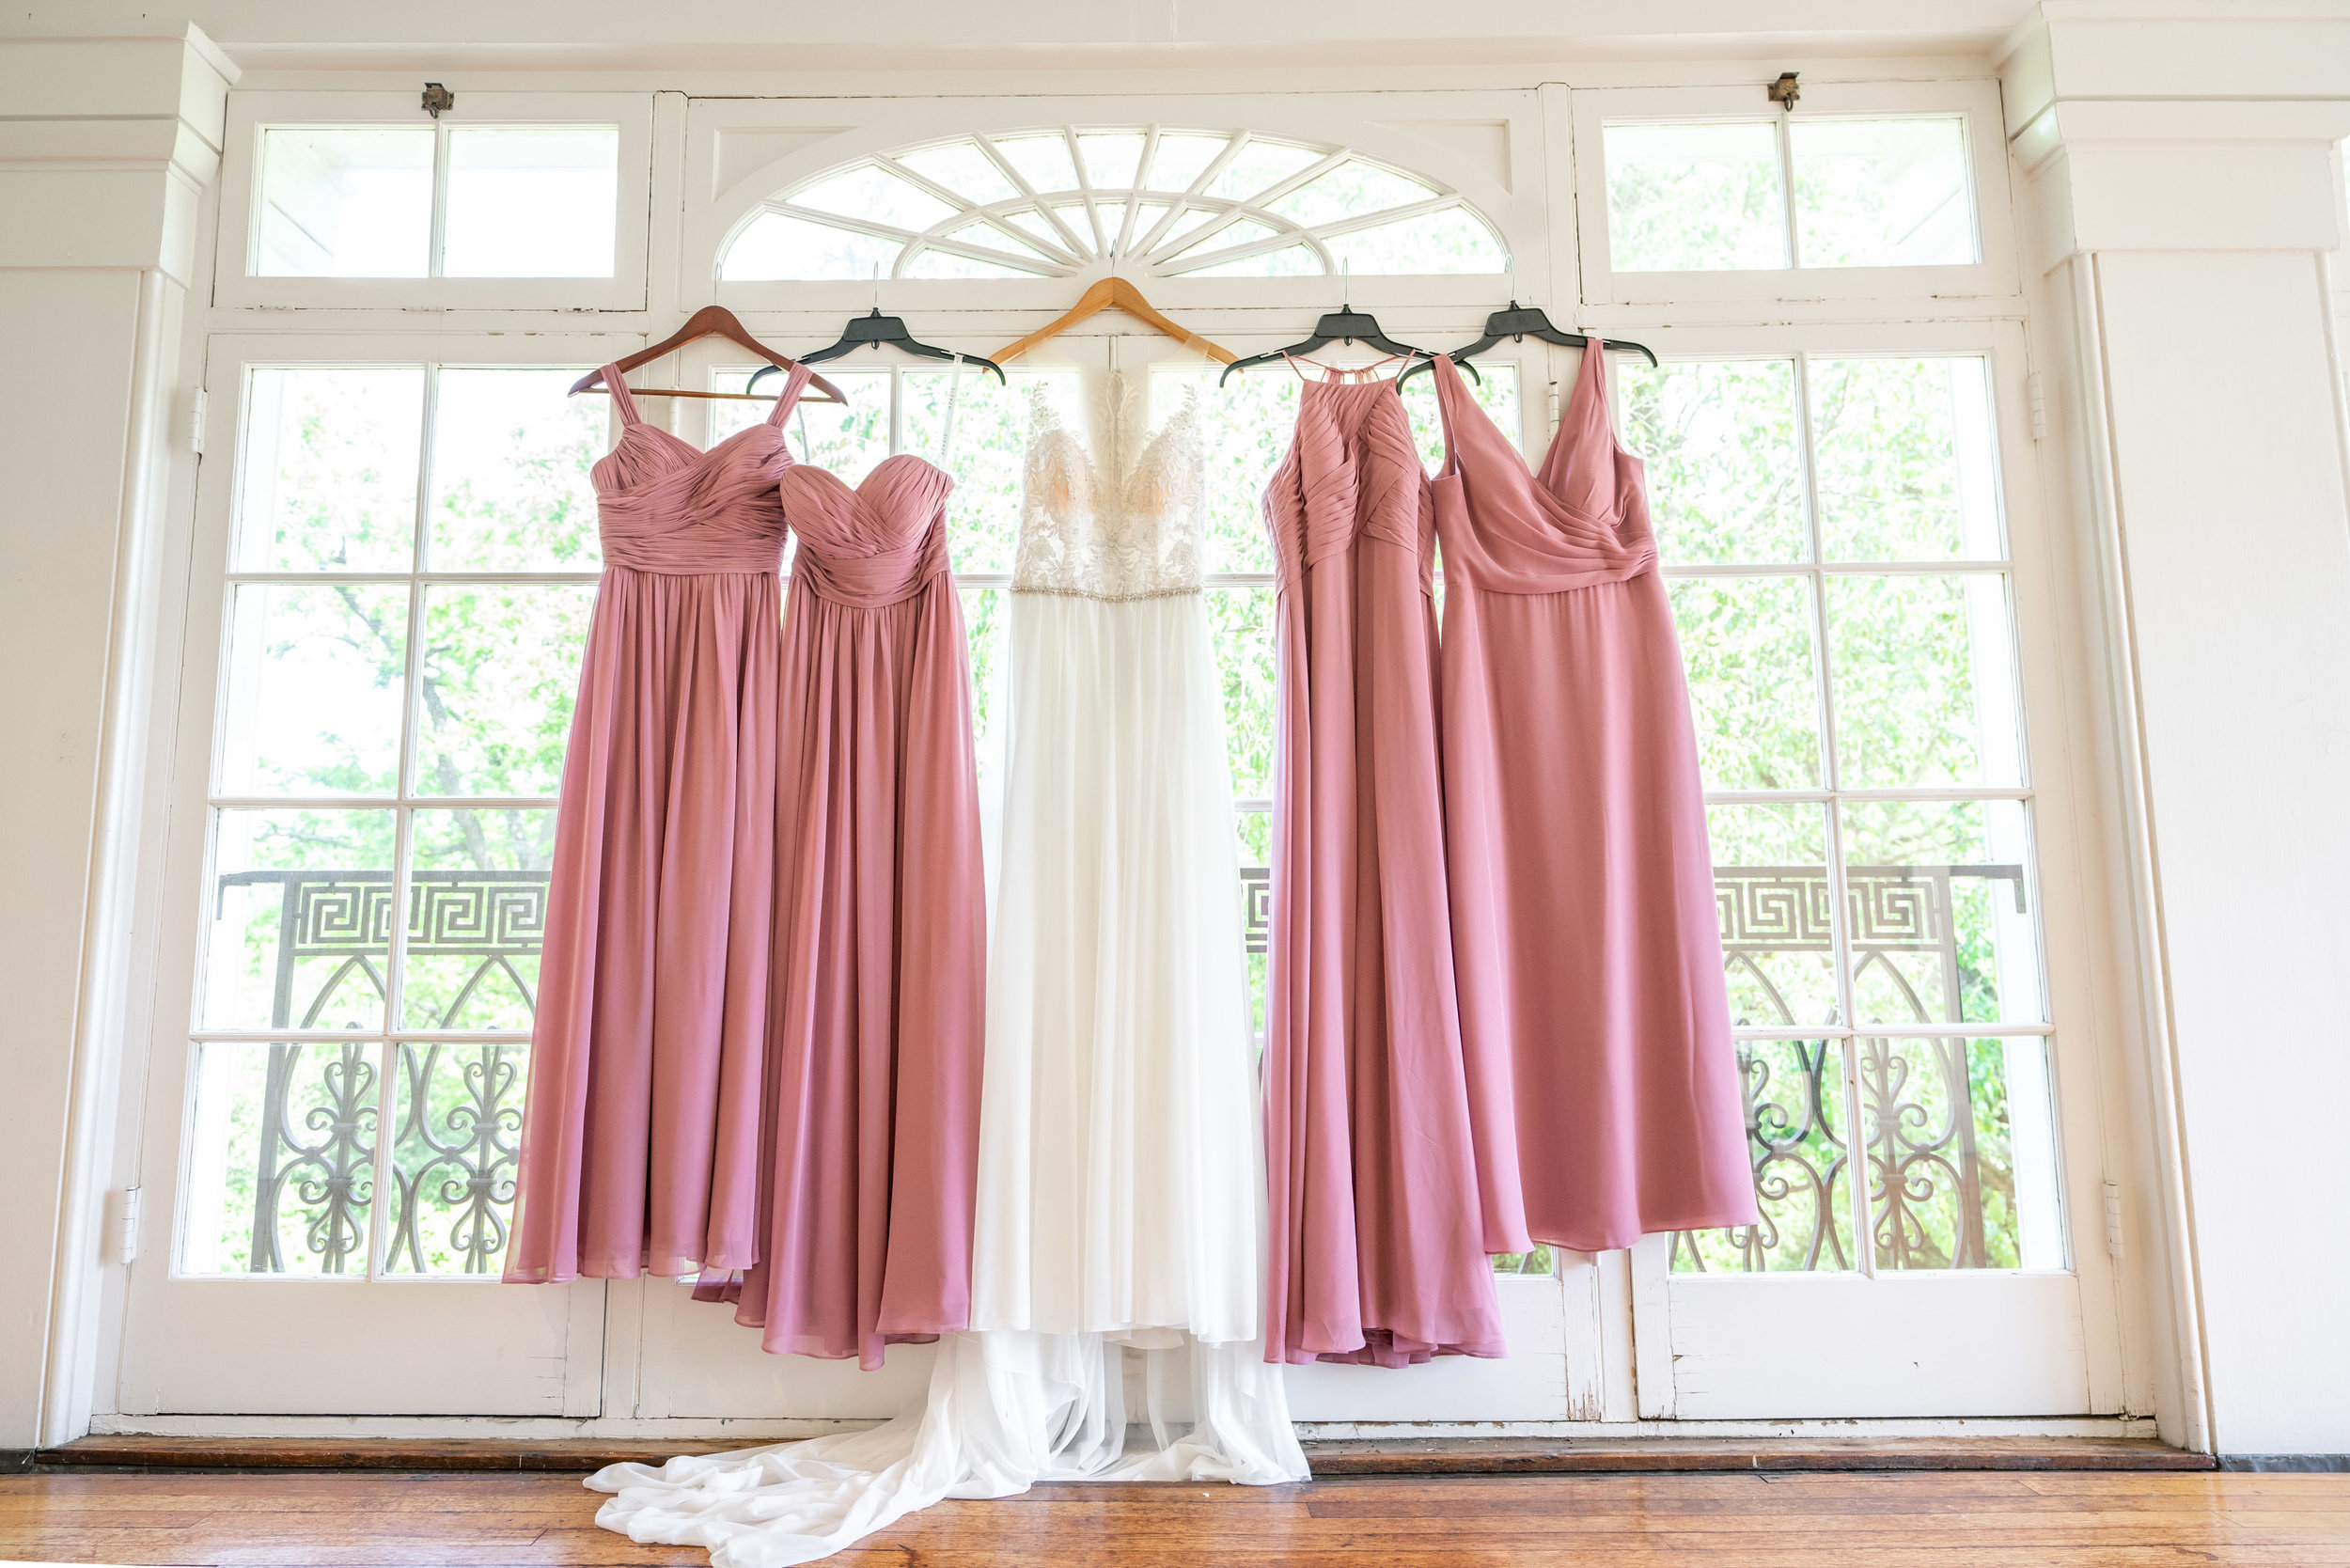 Wedding gown and bridesmaid dresses in balcony at Glenview Mansion in Rockville